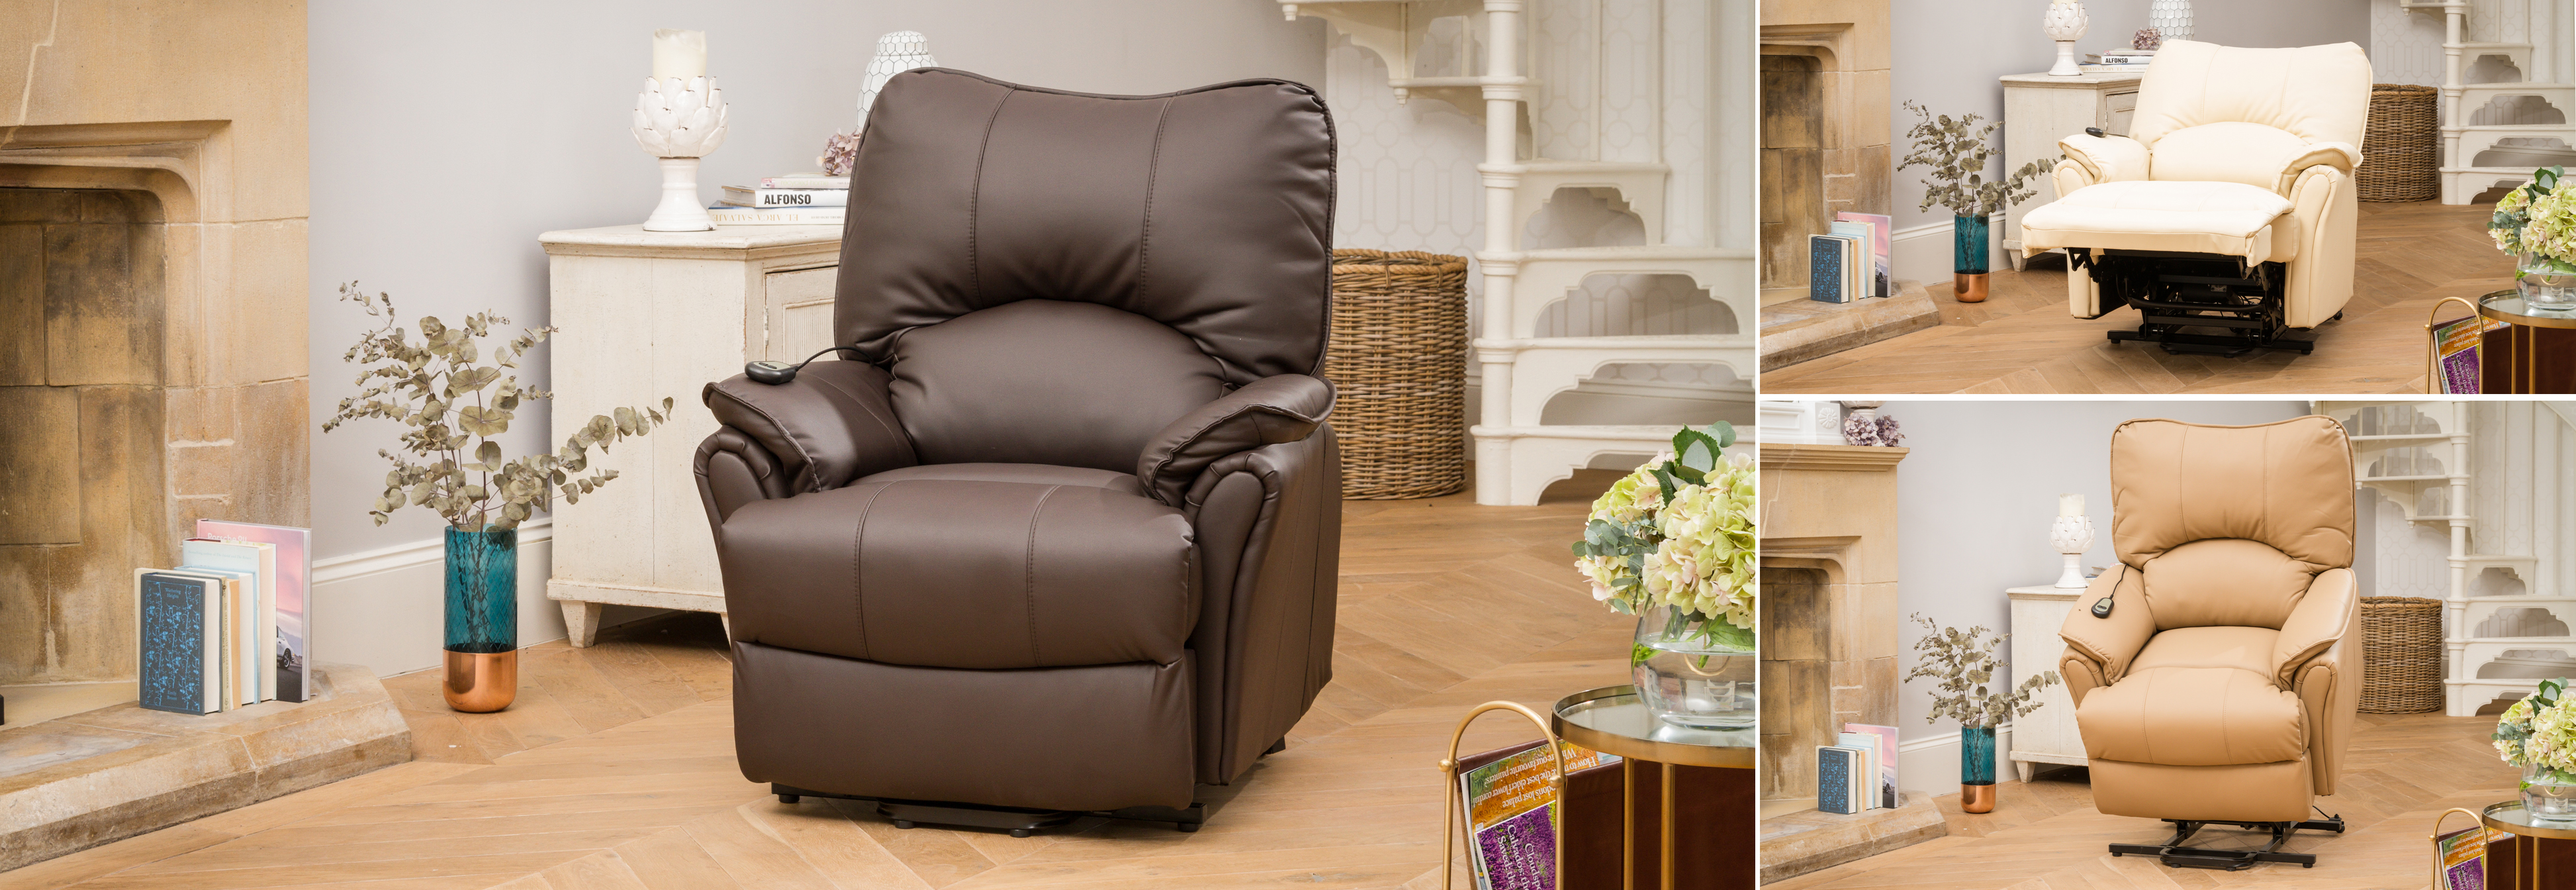 Eastleigh Riser Recliner with Heat and Massage brown